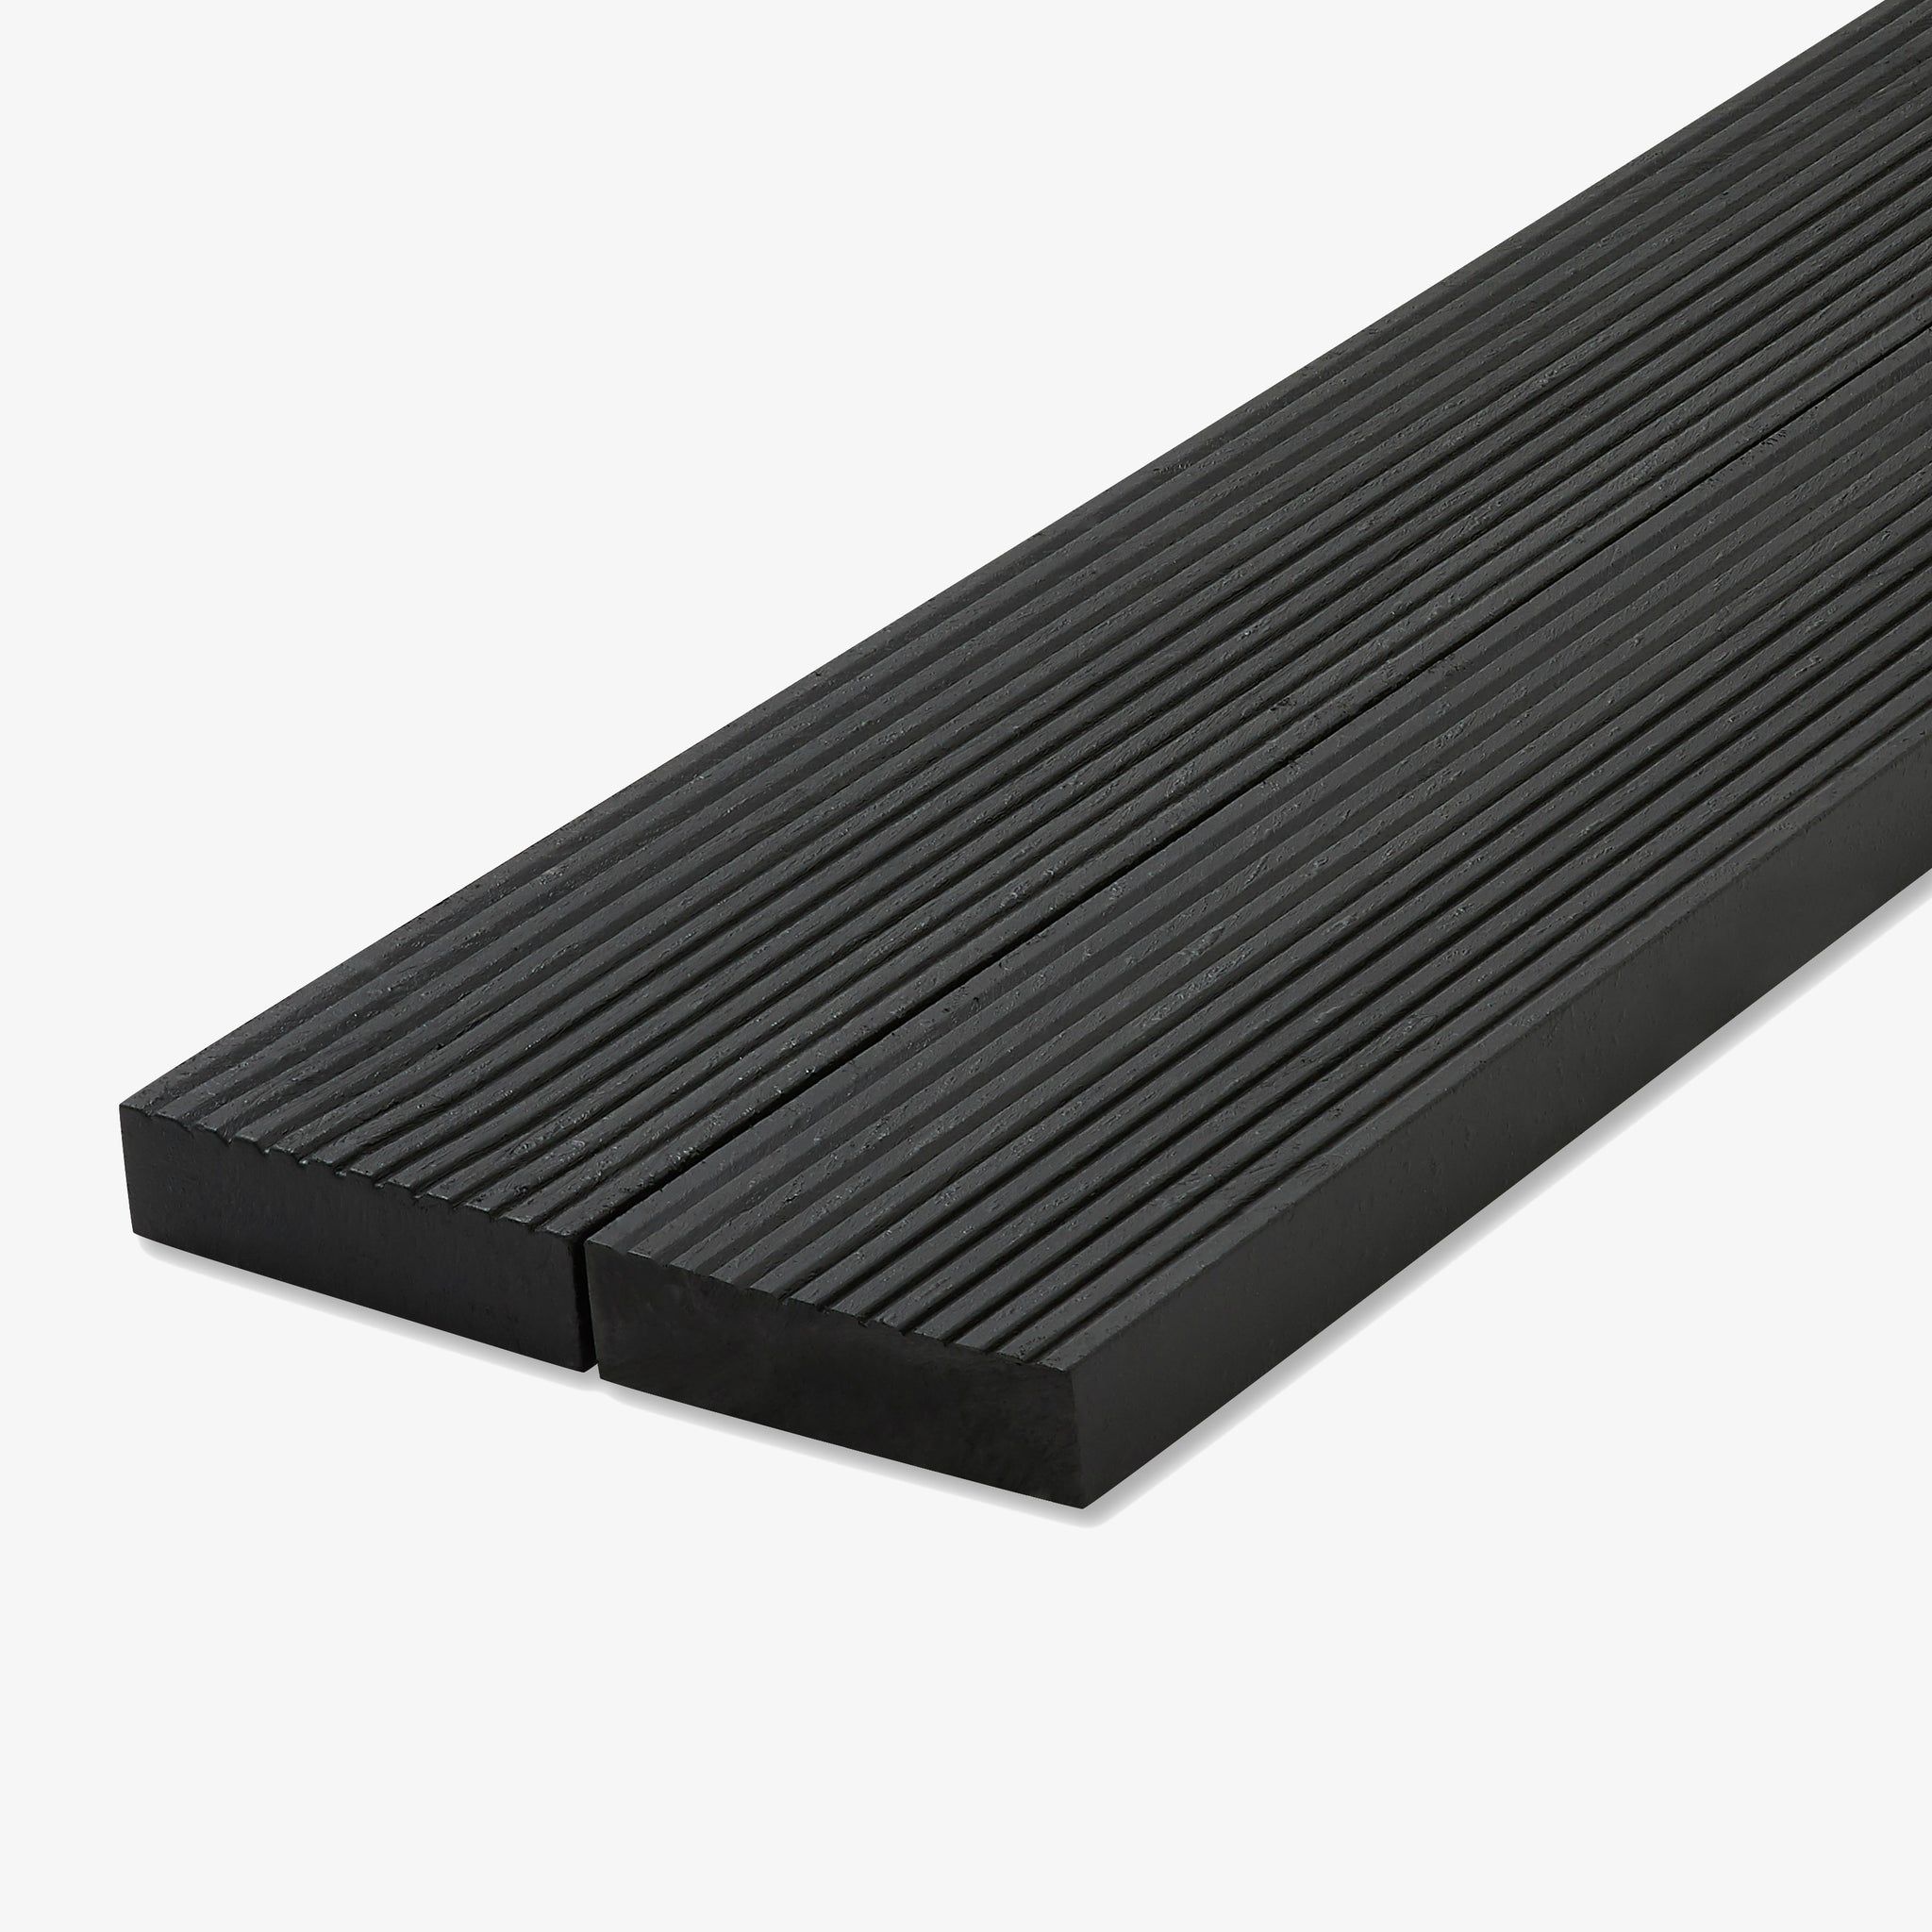 Recycled plastic lumber decking black